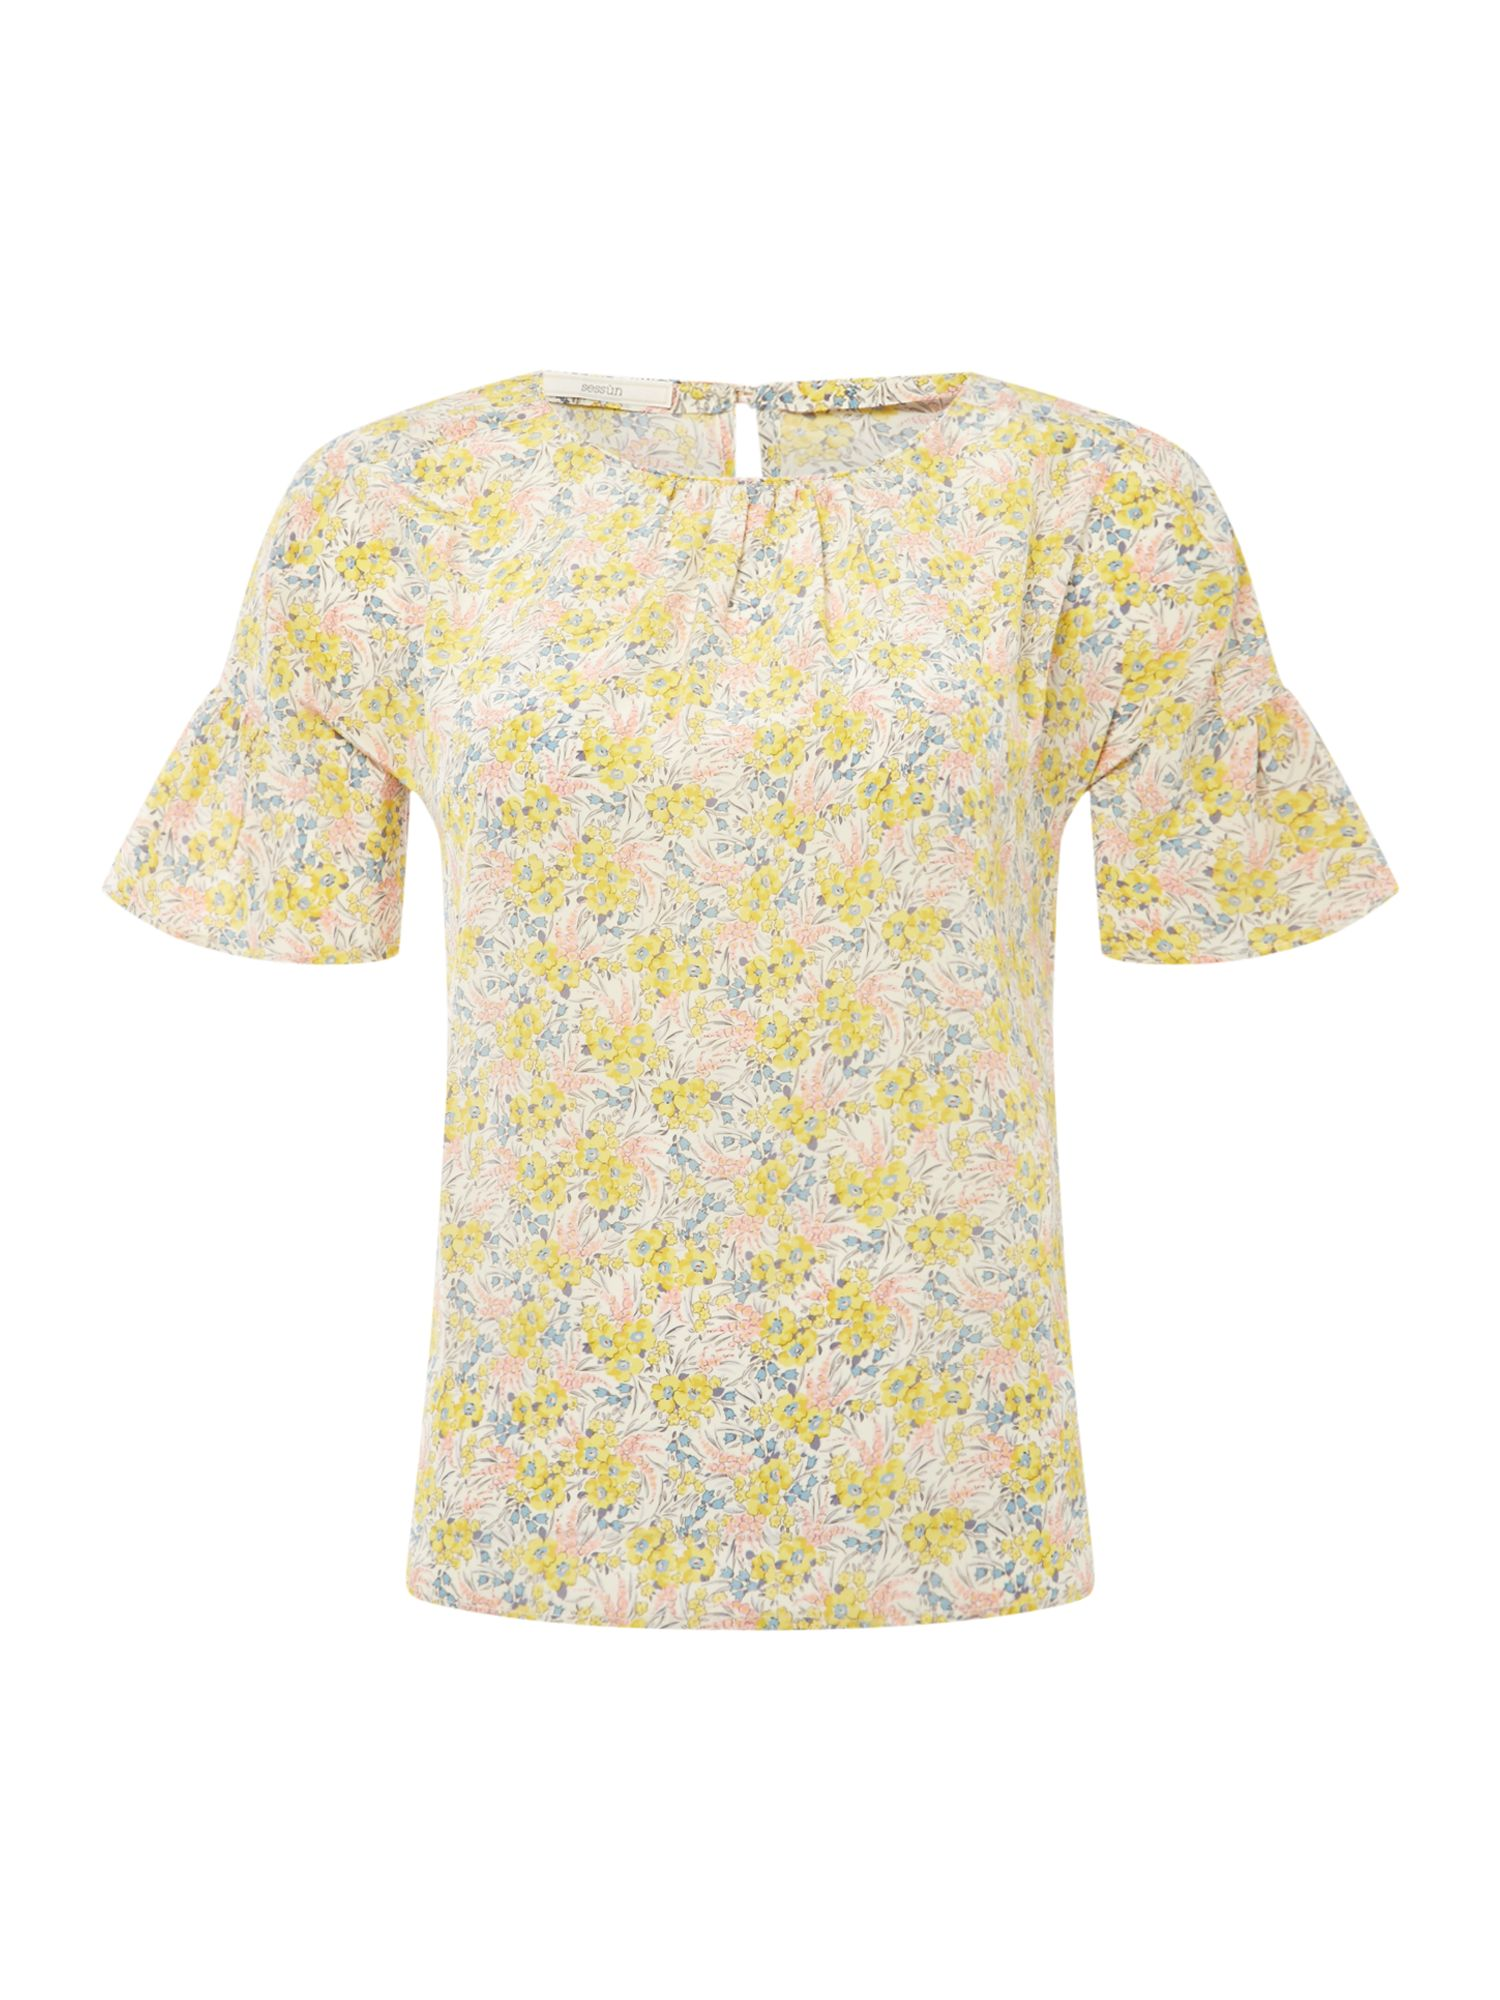 Sessun Maia Short Sleeve floral blouse, Multi-Coloured